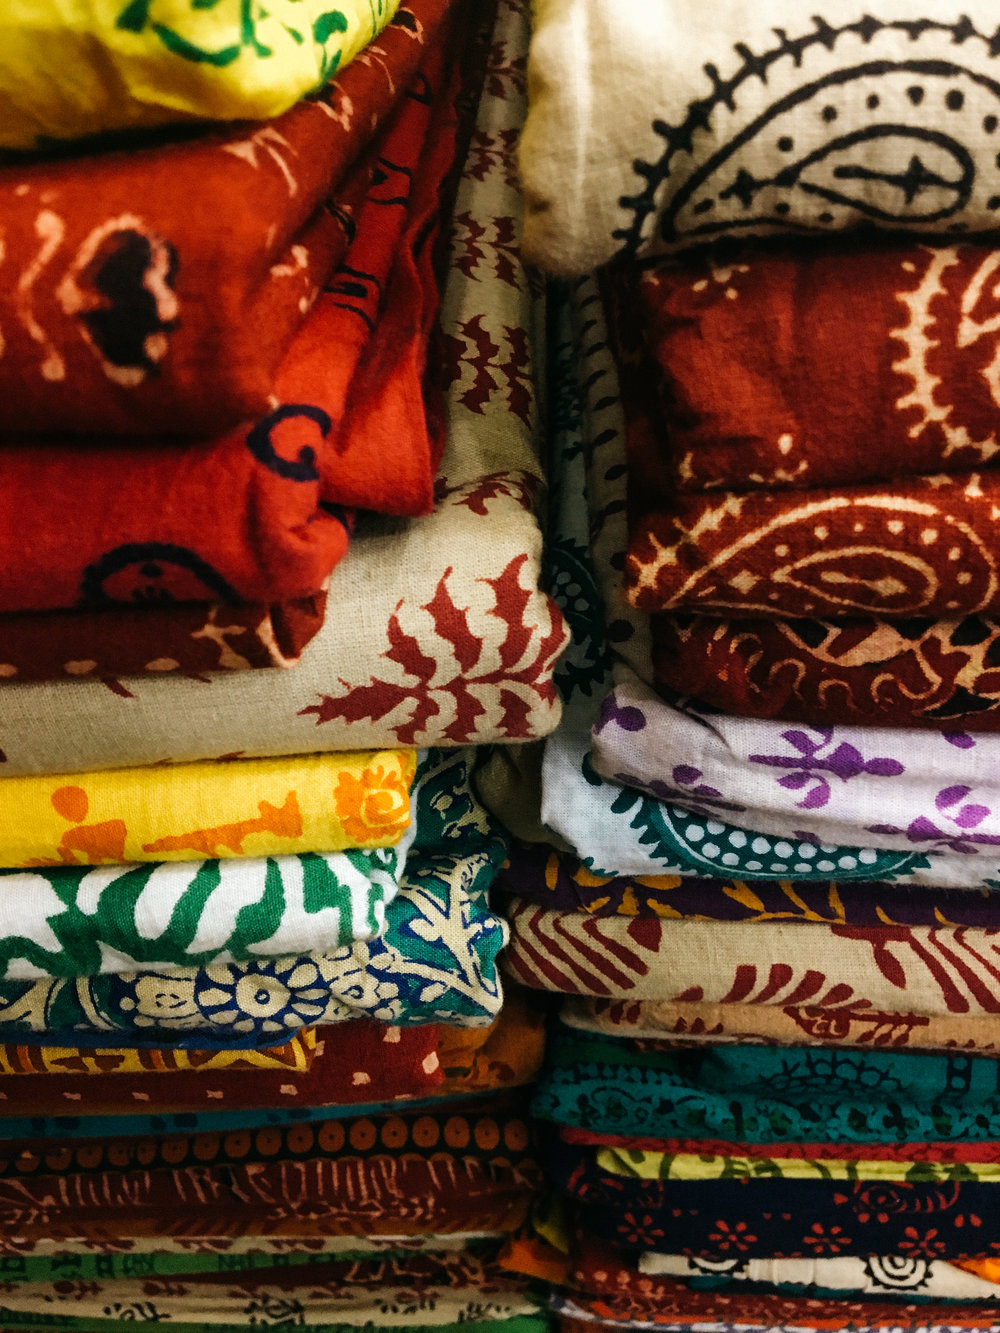 Dakshinapan - a feast for the eyes within Kolkata! Dakshinapan is a complex of stores, all carrying handicrafts and handloom textiles from all over India. It's an art-lover's paradise. This stack of beautifully block printed textiles is just a tiny portion of what one store carried!